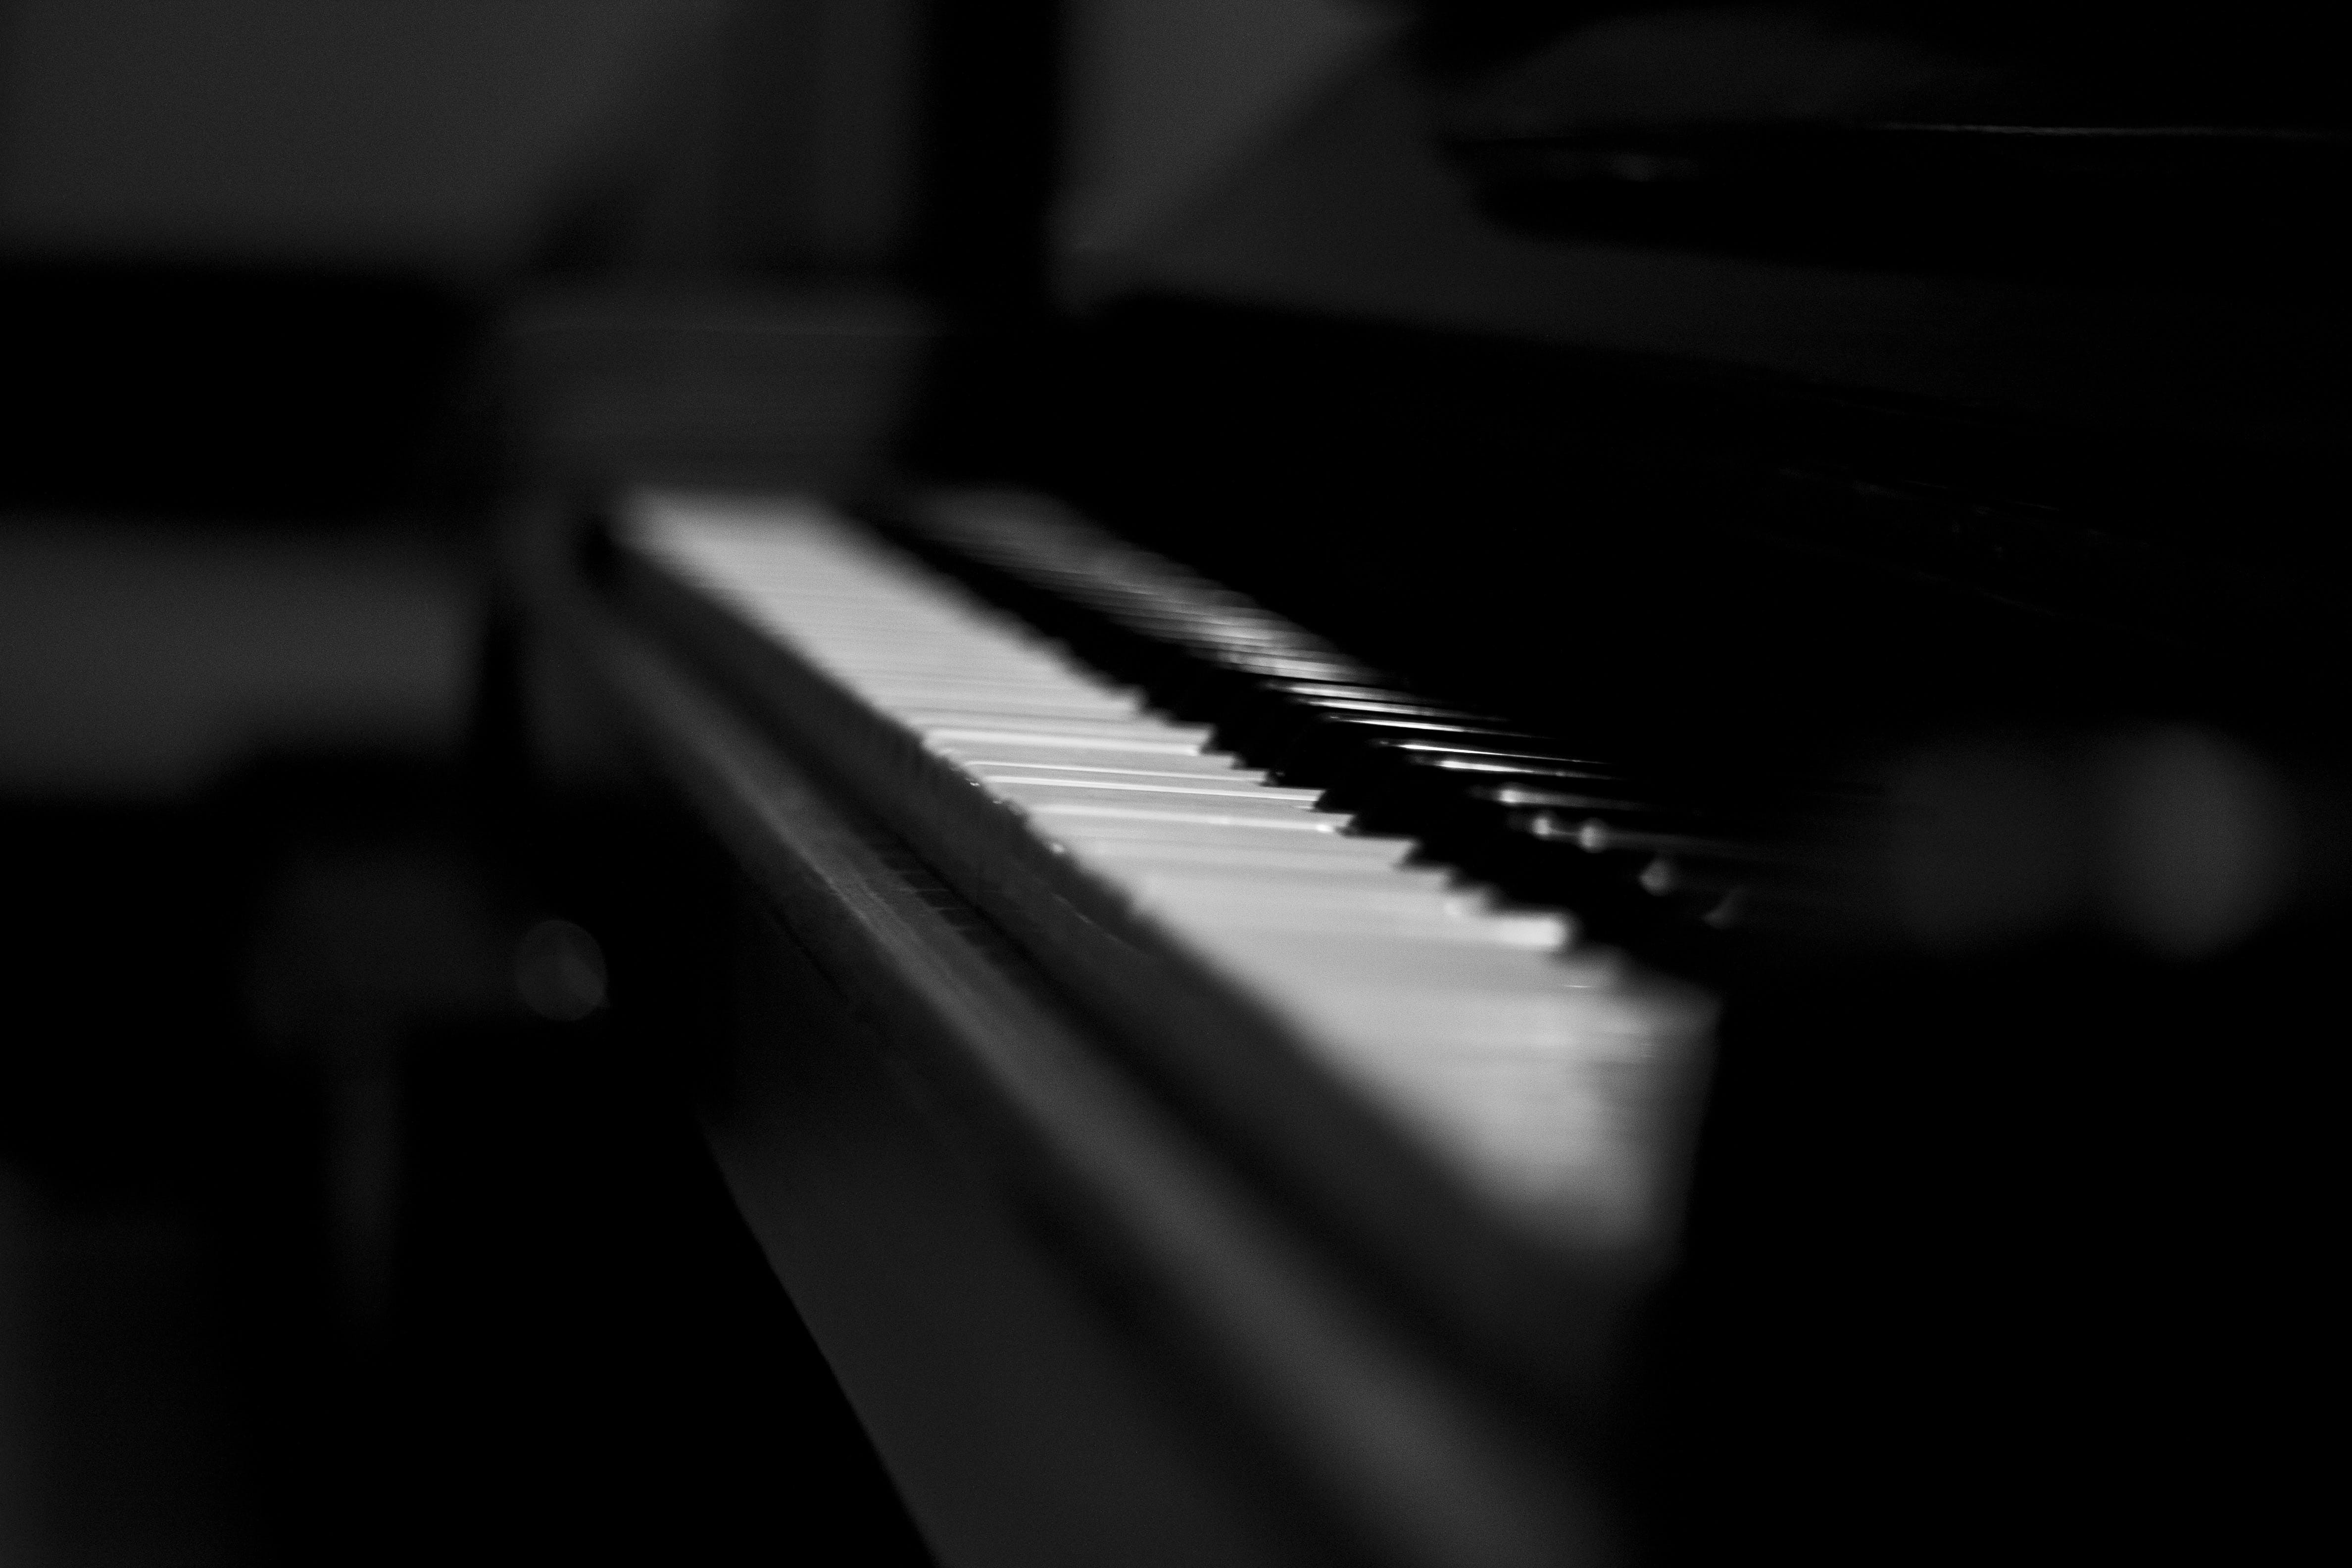 Free stock photo of black and white, music, musician, piano